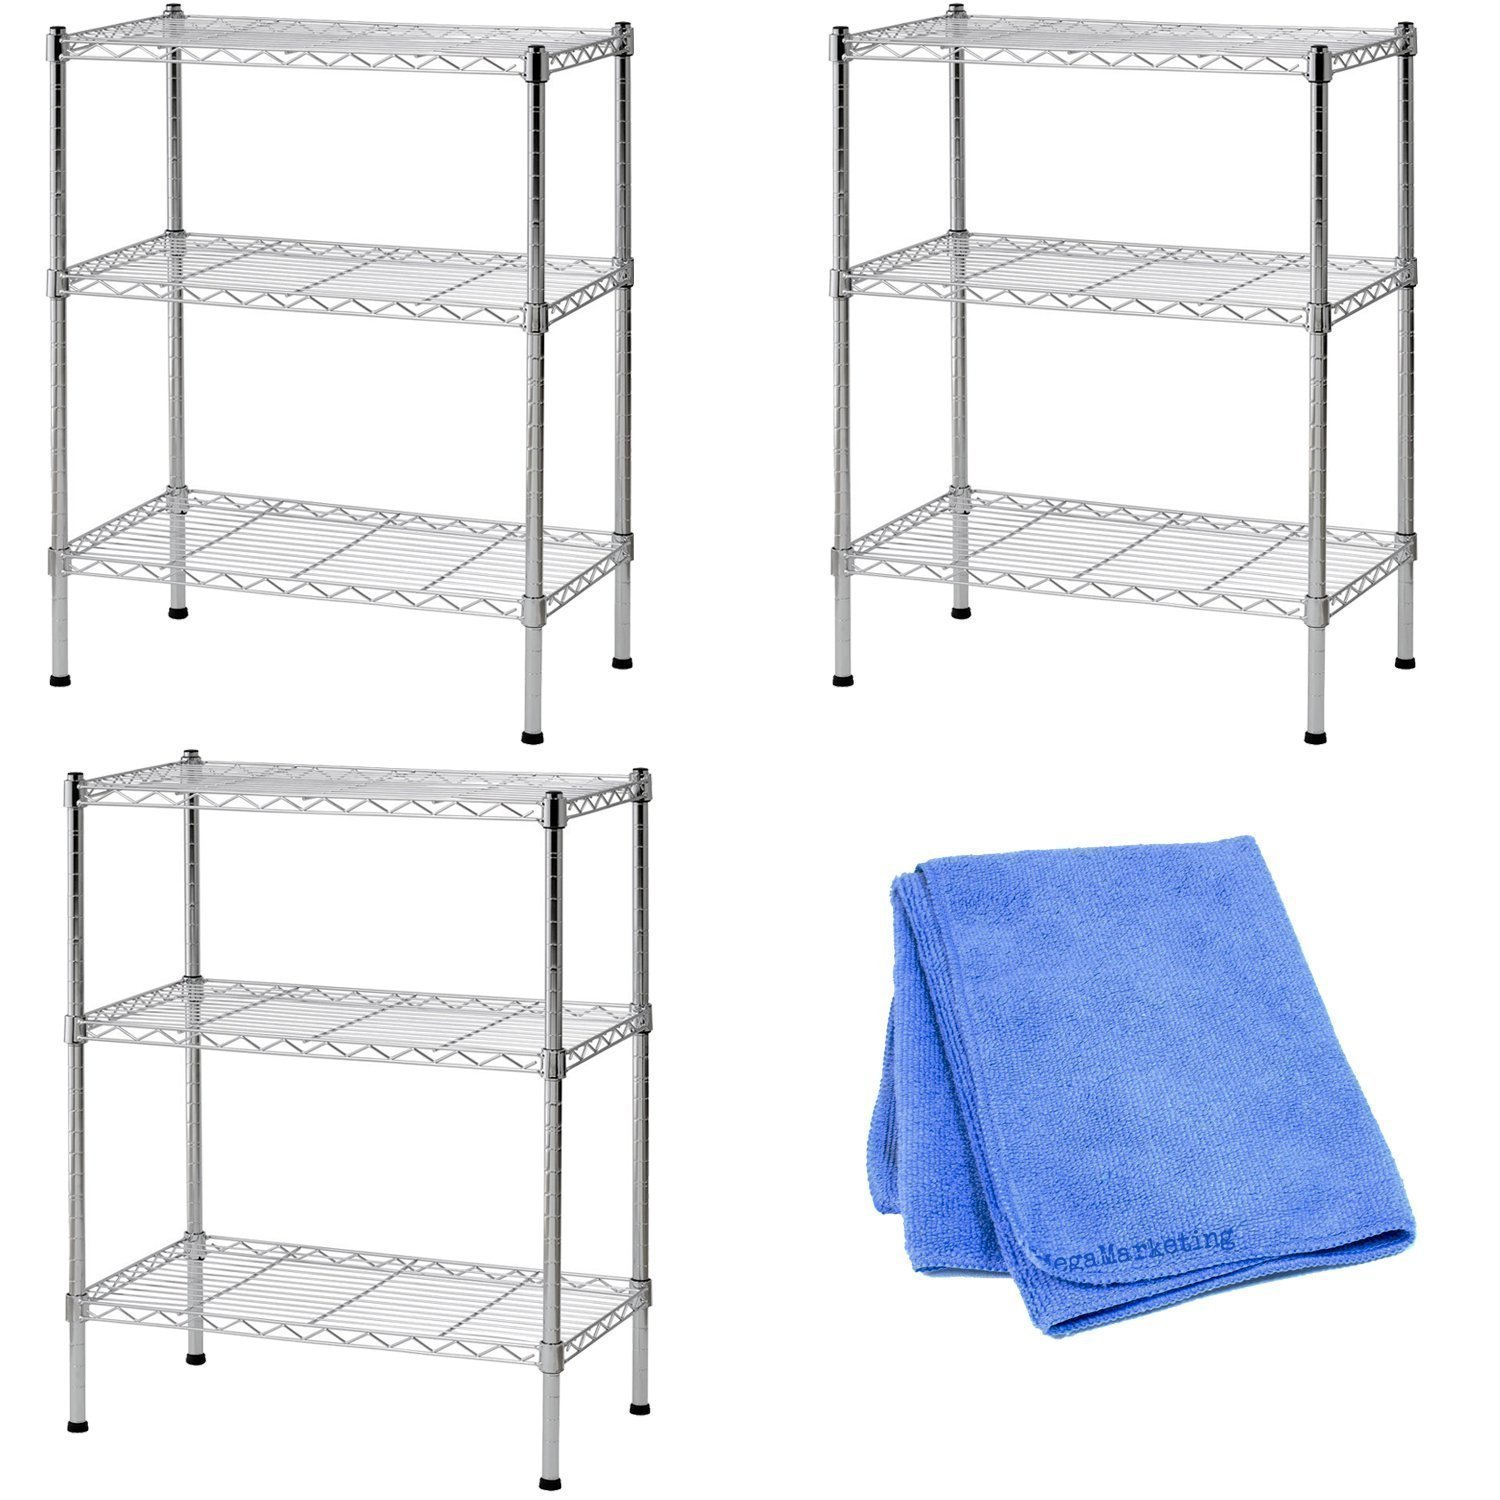 Sandusky WS241430 Wire Shelving, 24'' Width x 30'' Height x 14'' Depth, 3 Shelves, Chrome, 3-Pack with Dust Wipe Cloth